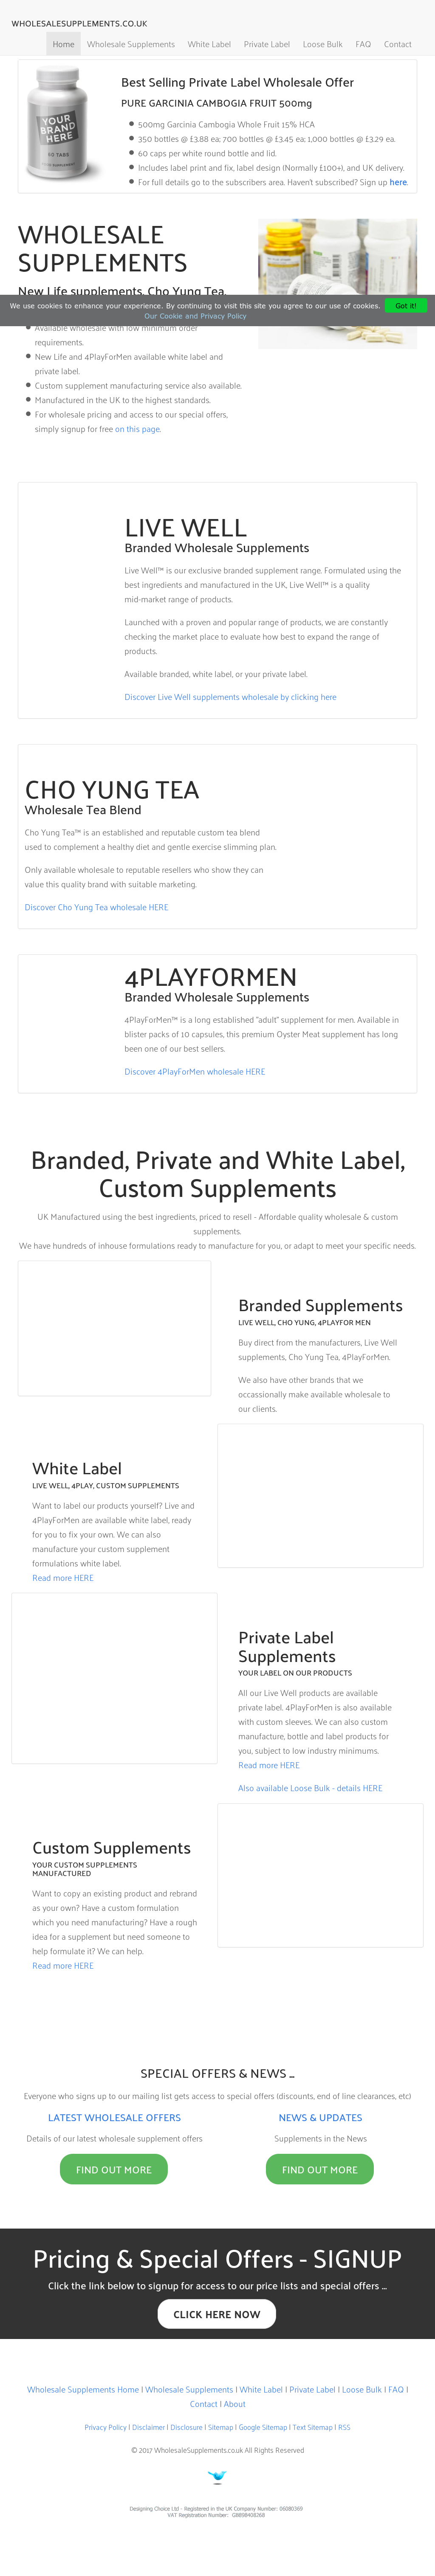 Wholesale Supplements Uk Competitors, Revenue and Employees - Owler